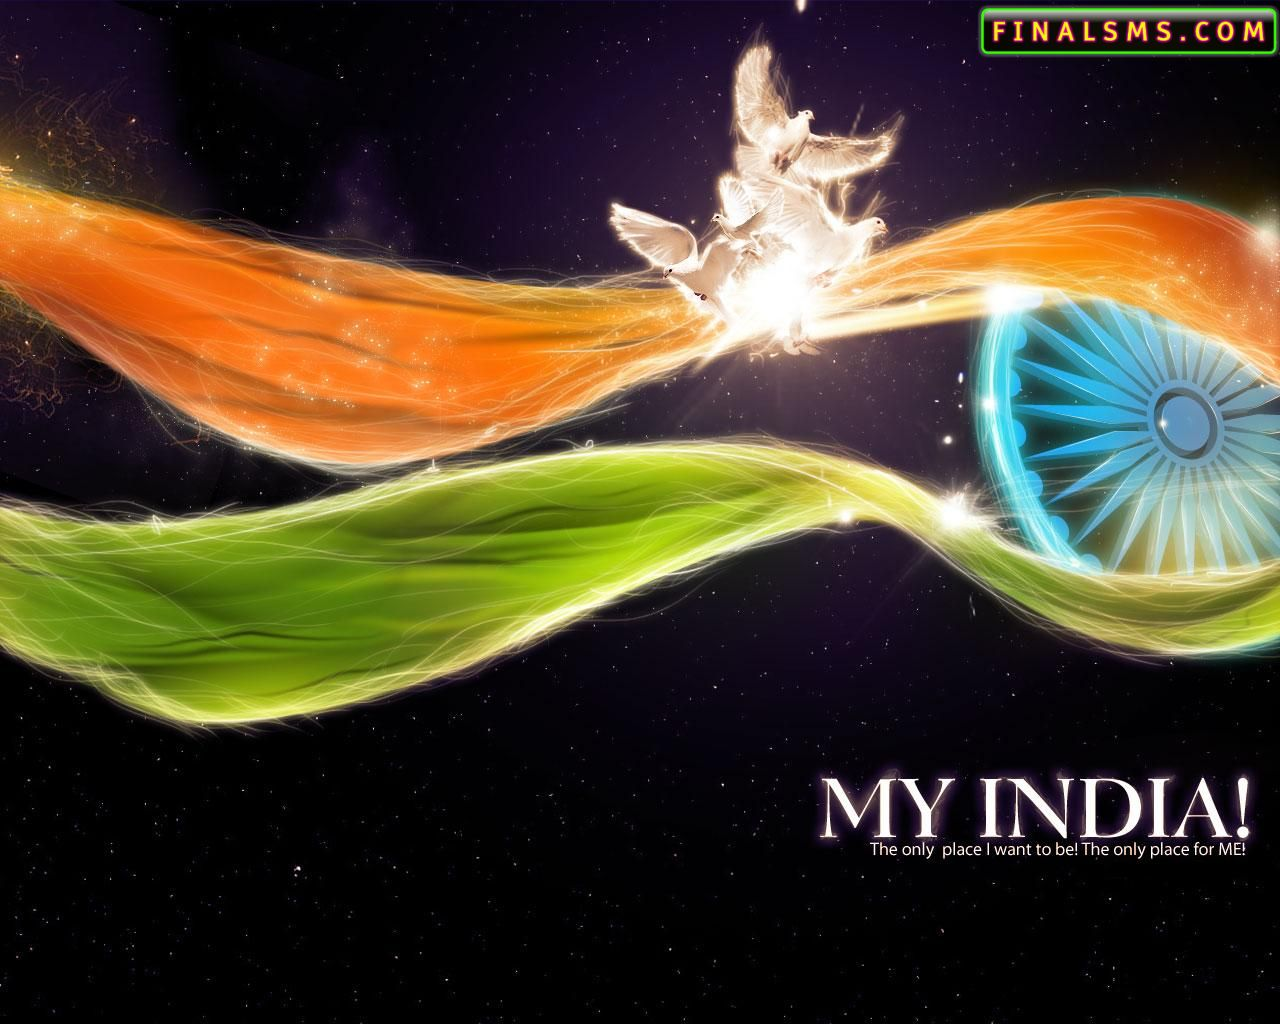 Desktop Wallpaper Of January 26 January Republic Day India